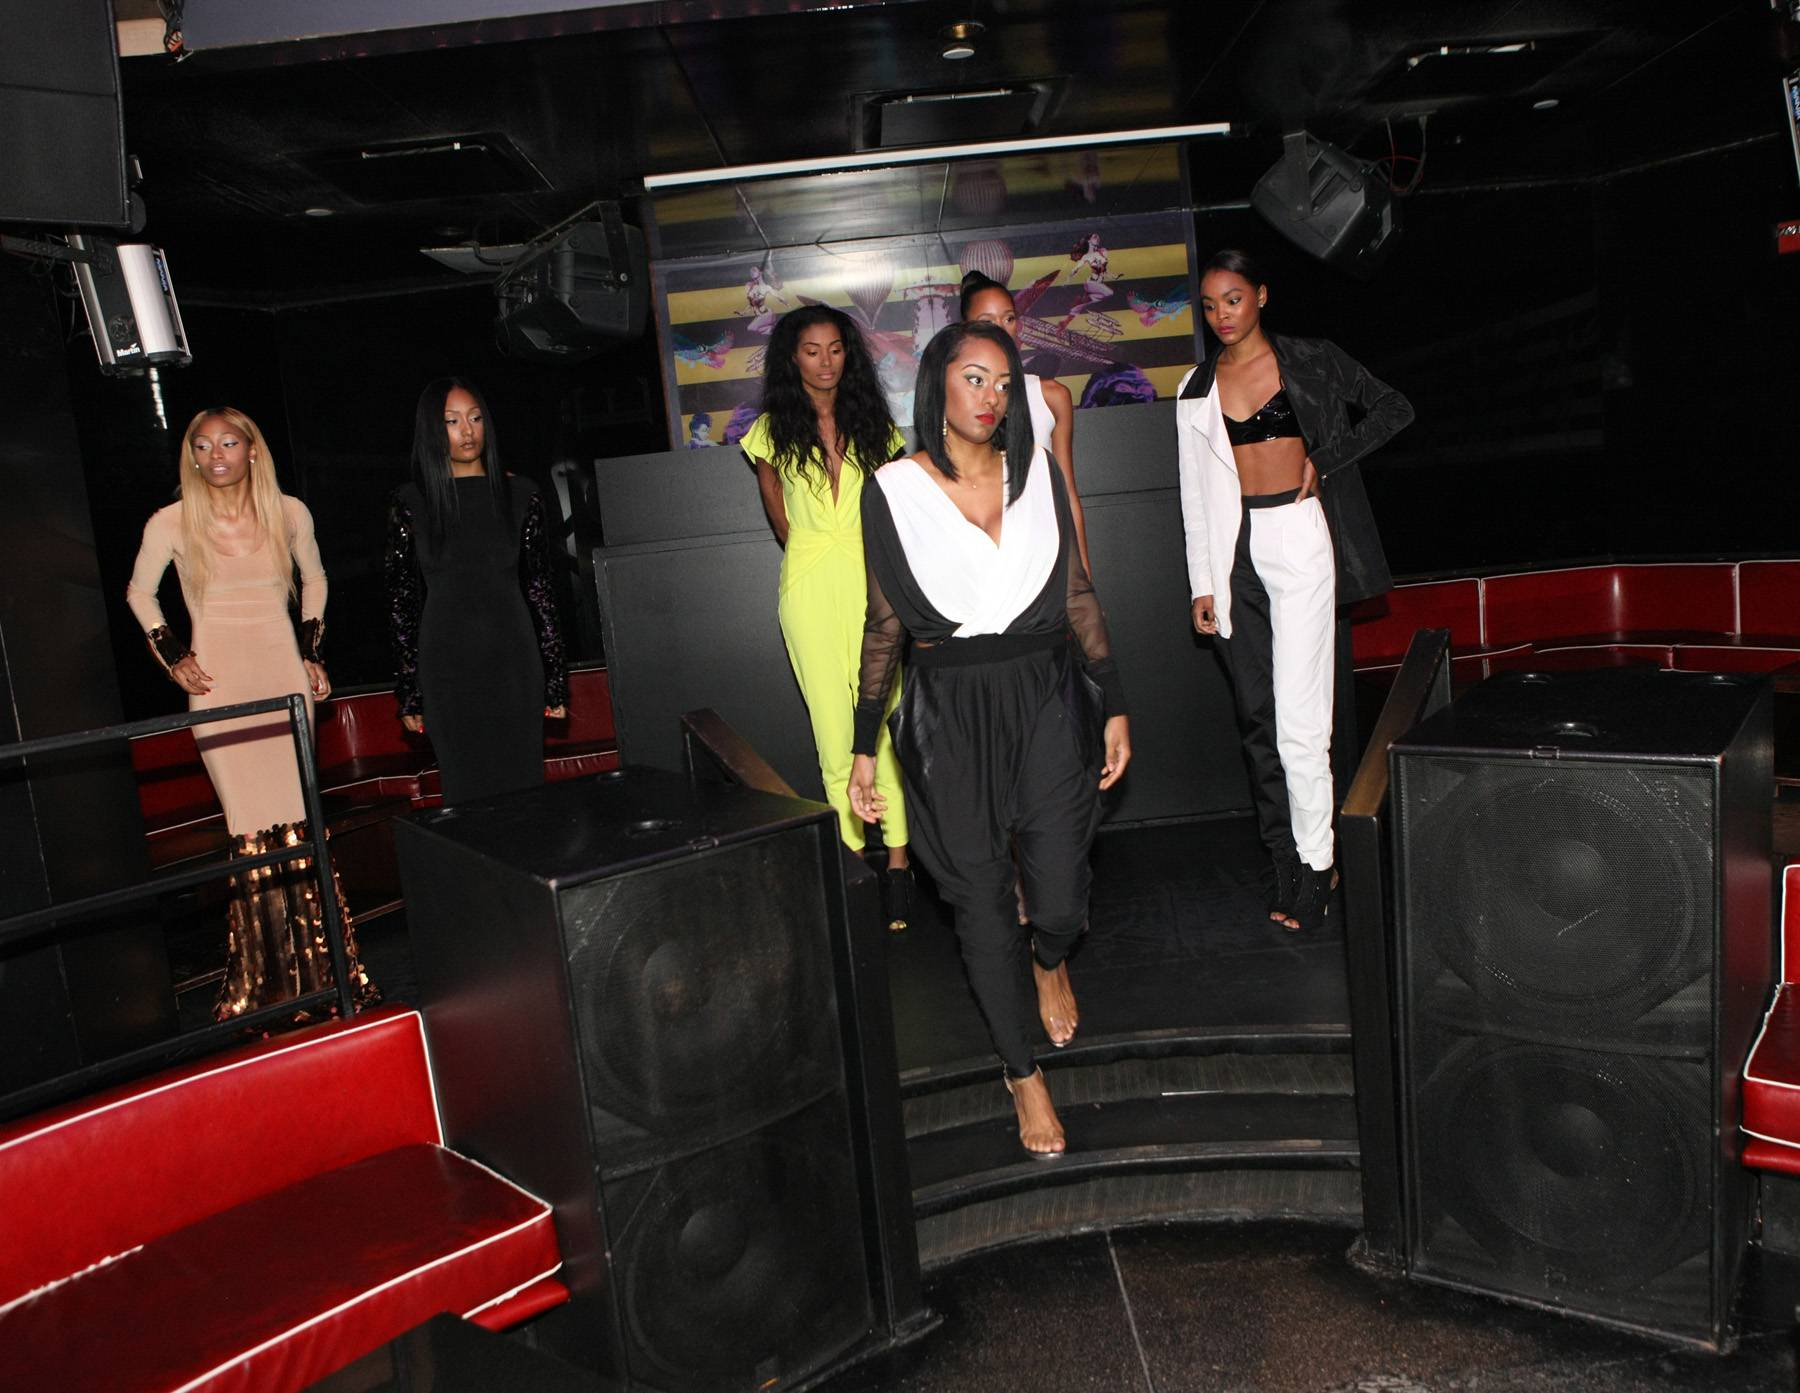 Runway - The models get ready to rip it on 106. (Photo: Bennett Raglin/BET/Getty Images for BET)